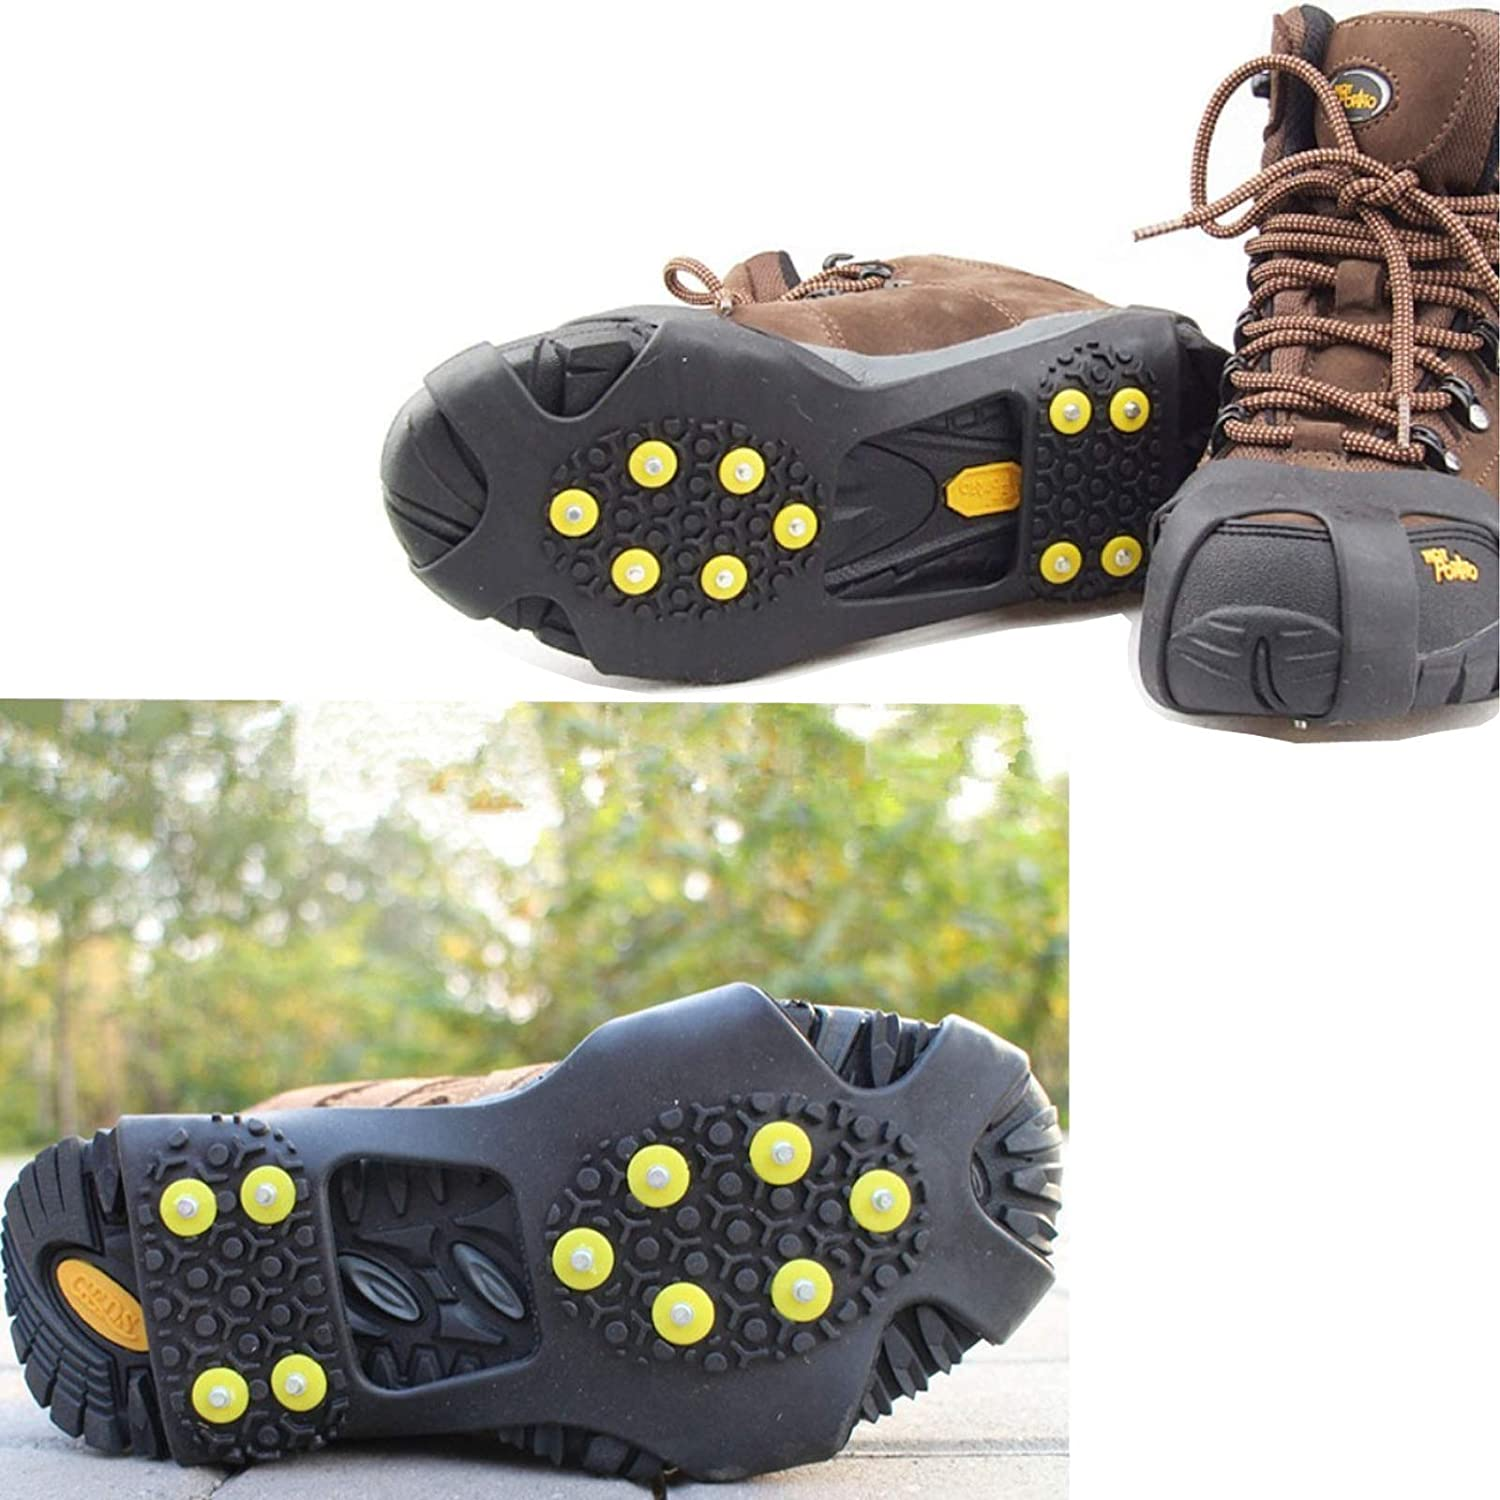 NEEBAO Ice Shoes Grippers Cleats for Shoes,Ice Snow Grips Traction Cleats for Men//Women//Kids,Anti-Slip Ice Shoes Covers for Boots